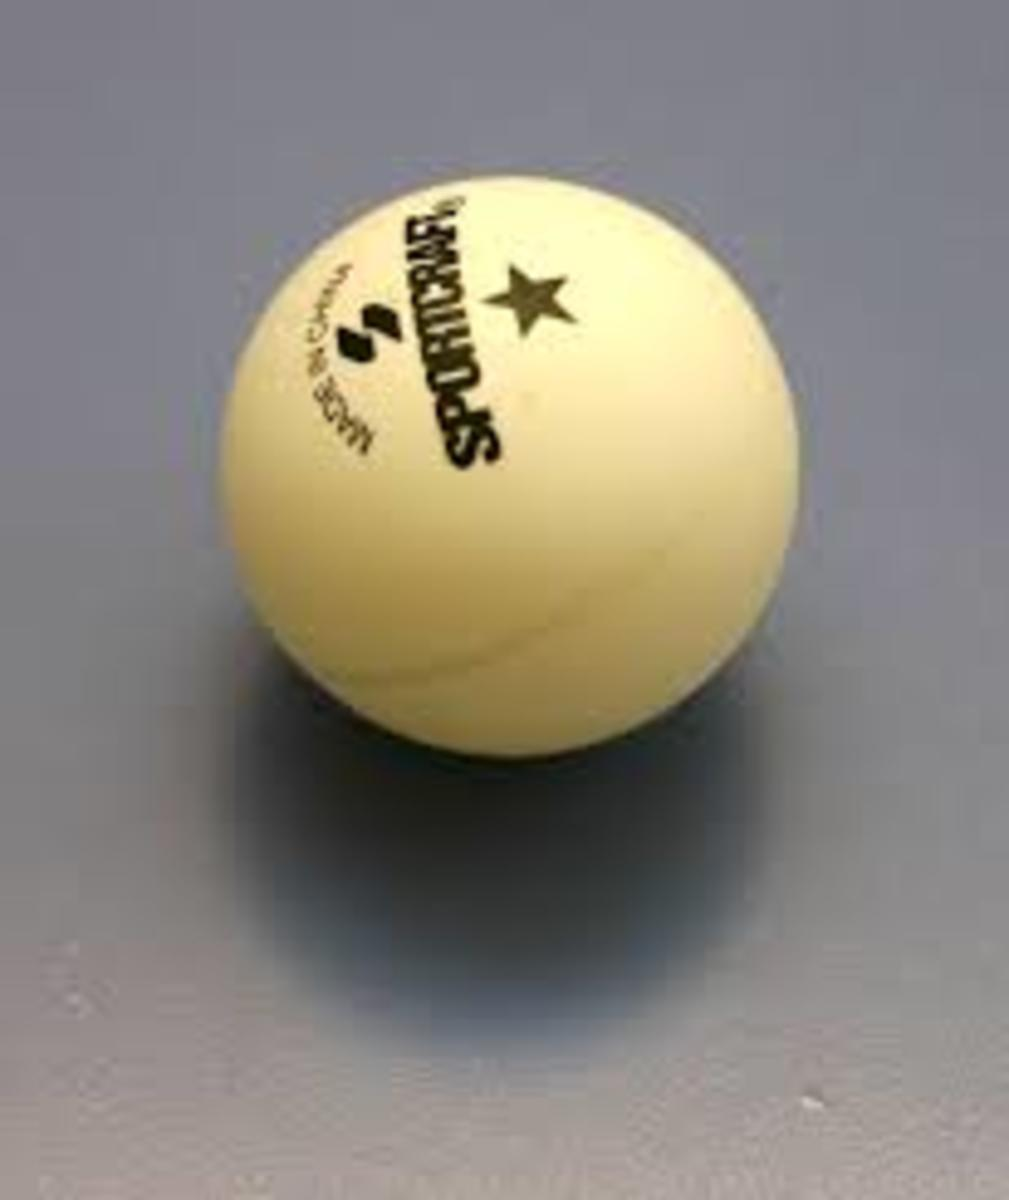 Table tennis ball also known as ping pong ball